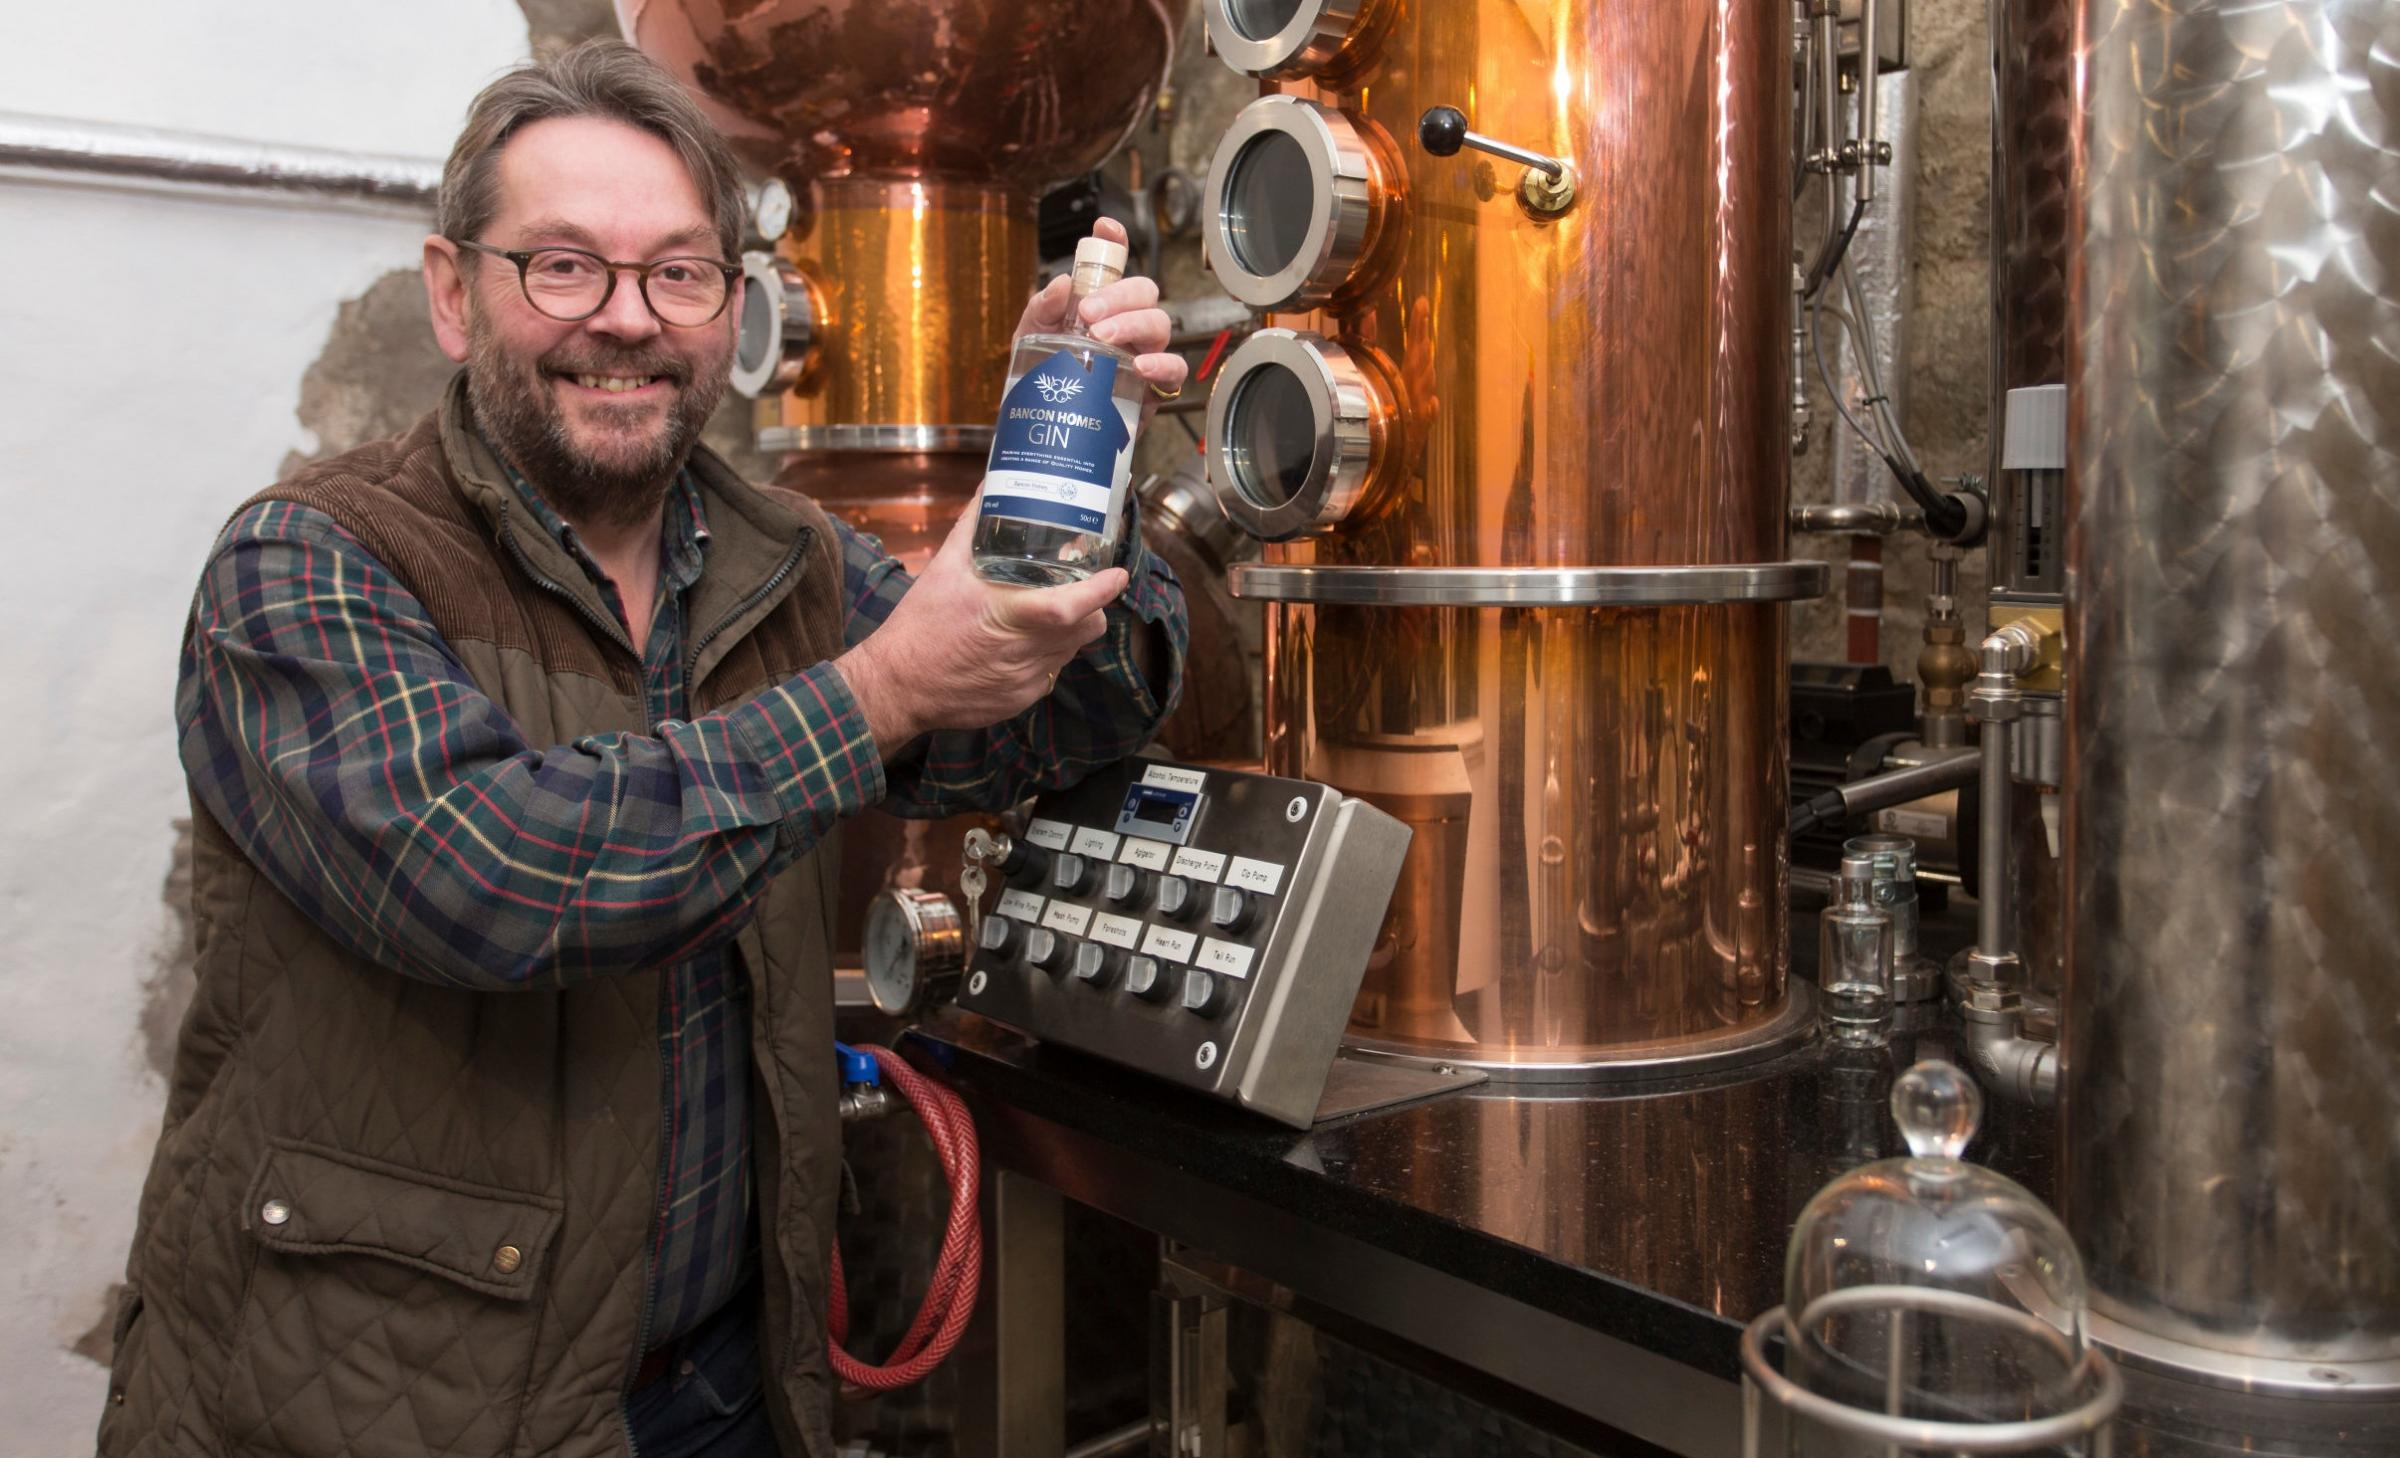 Simon Fairclough, director of Glenshee Craft Distillers in Perthshire with the new Bancon Homes gin